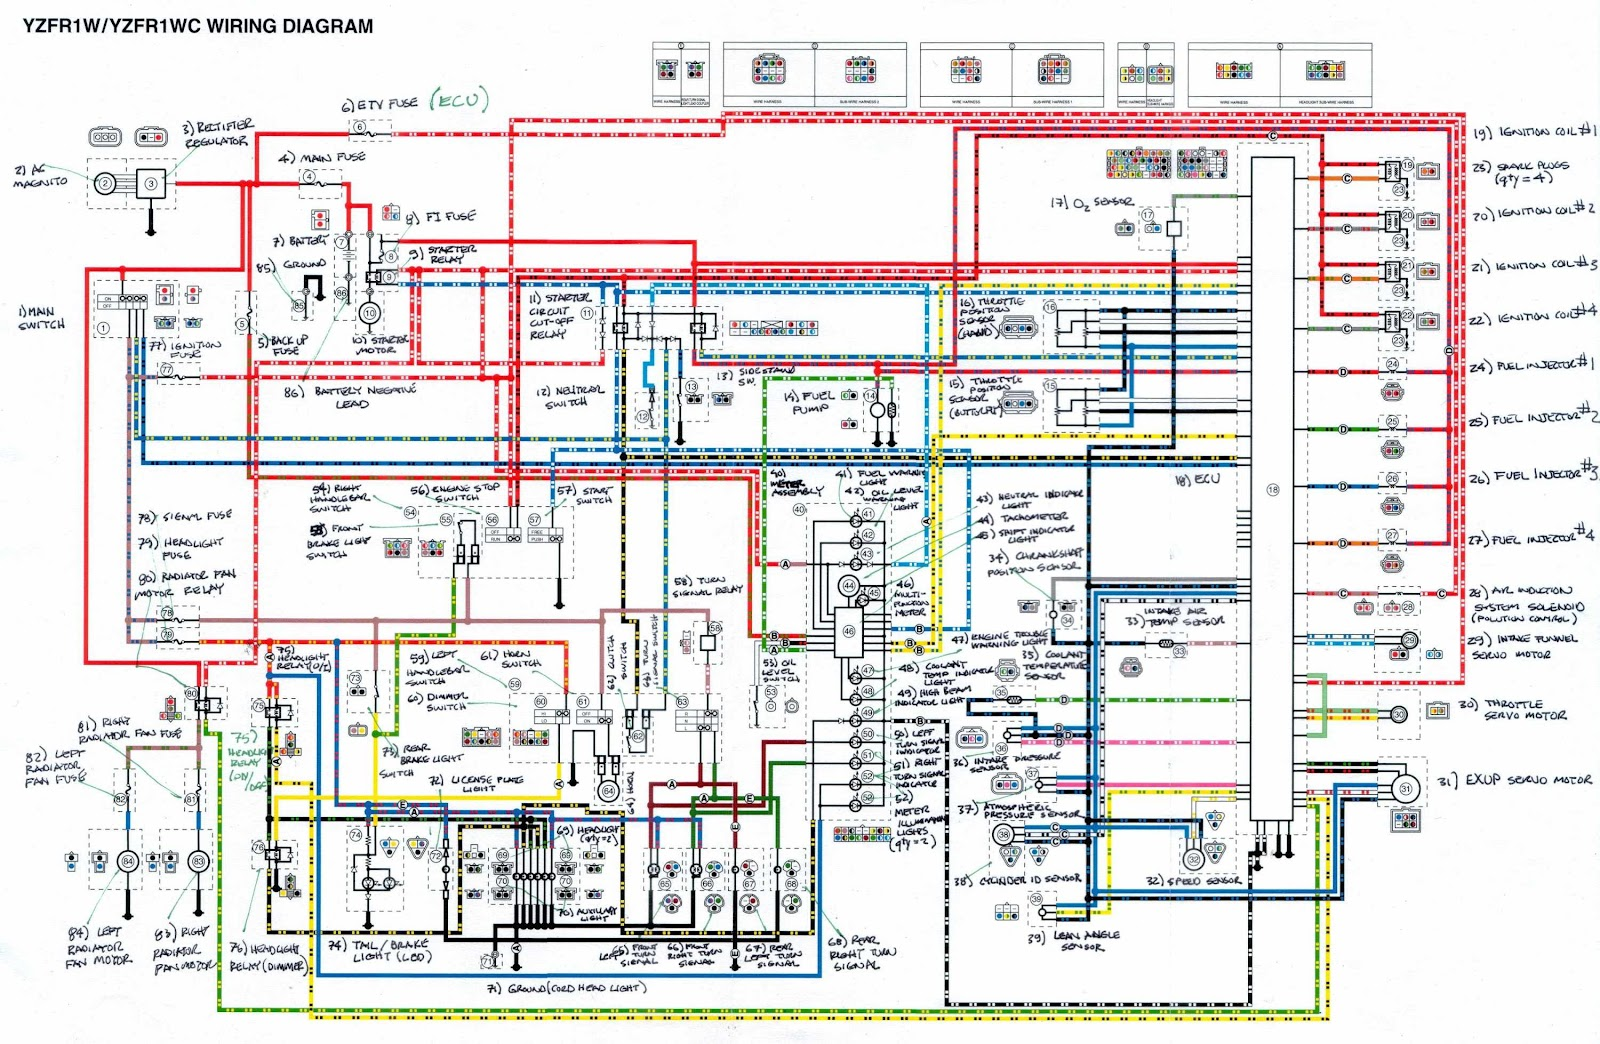 Yamaha+YZF R1+Motorcycle+Wiring+Diagram yamaha blaster wiring diagram the wiring diagram readingrat net 2002 yamaha big bear 400 wiring diagram at fashall.co